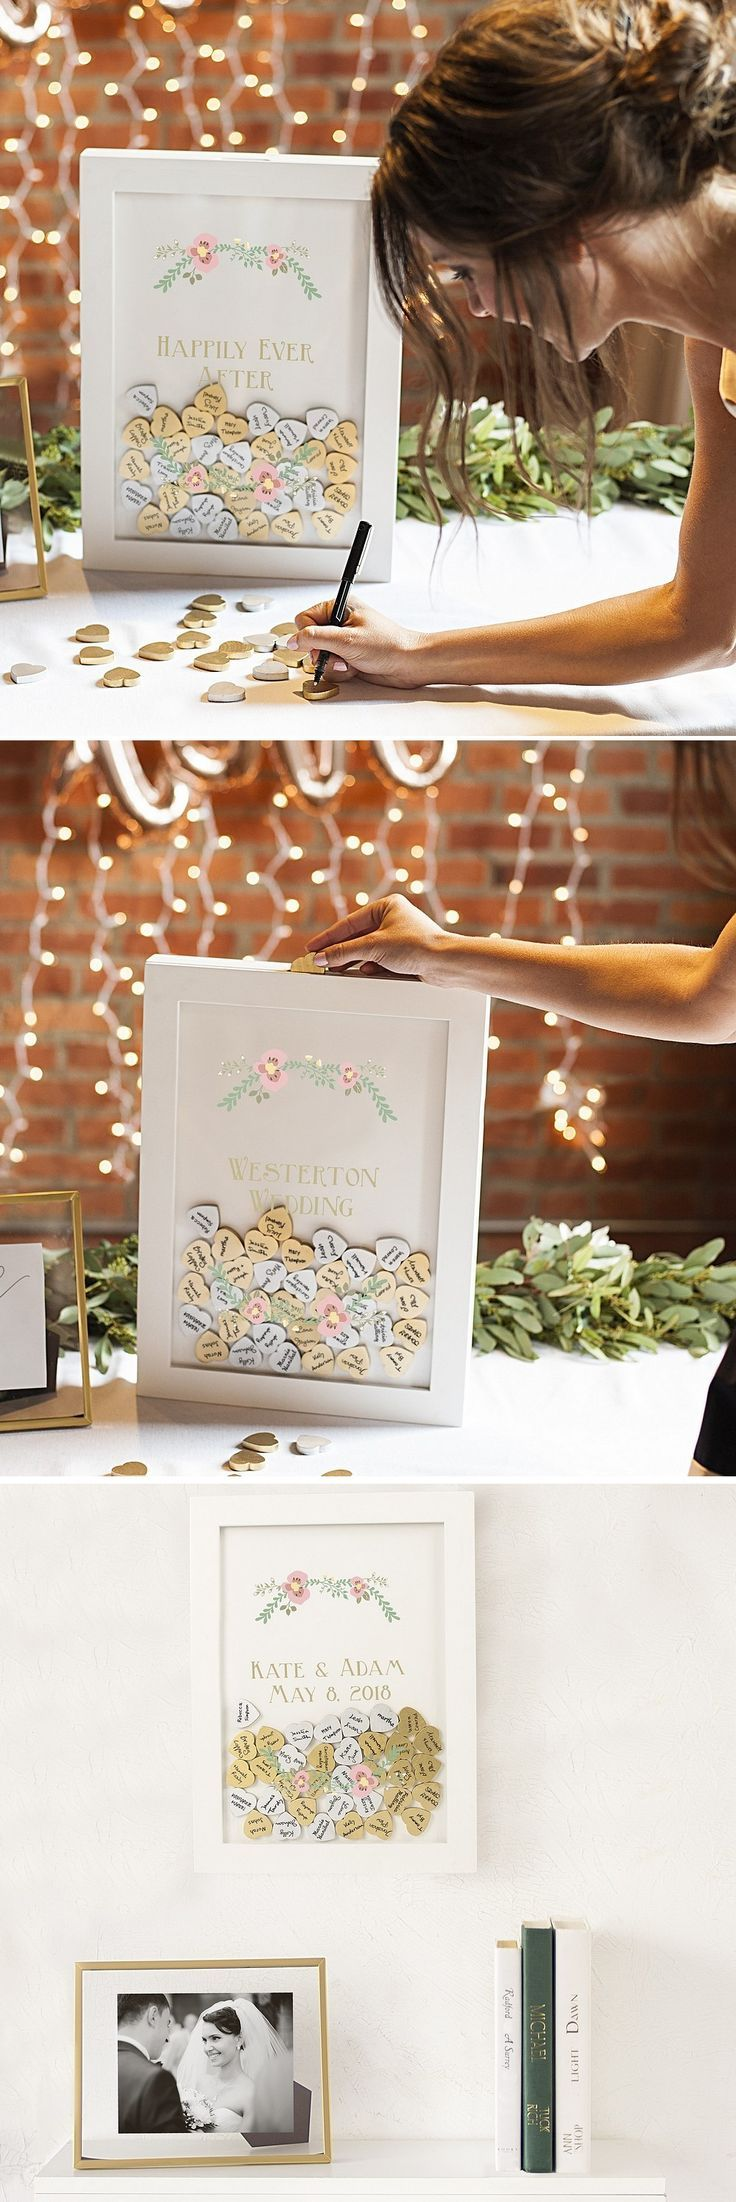 Personalized Heart Drop Guest Book Shadow Box Diy